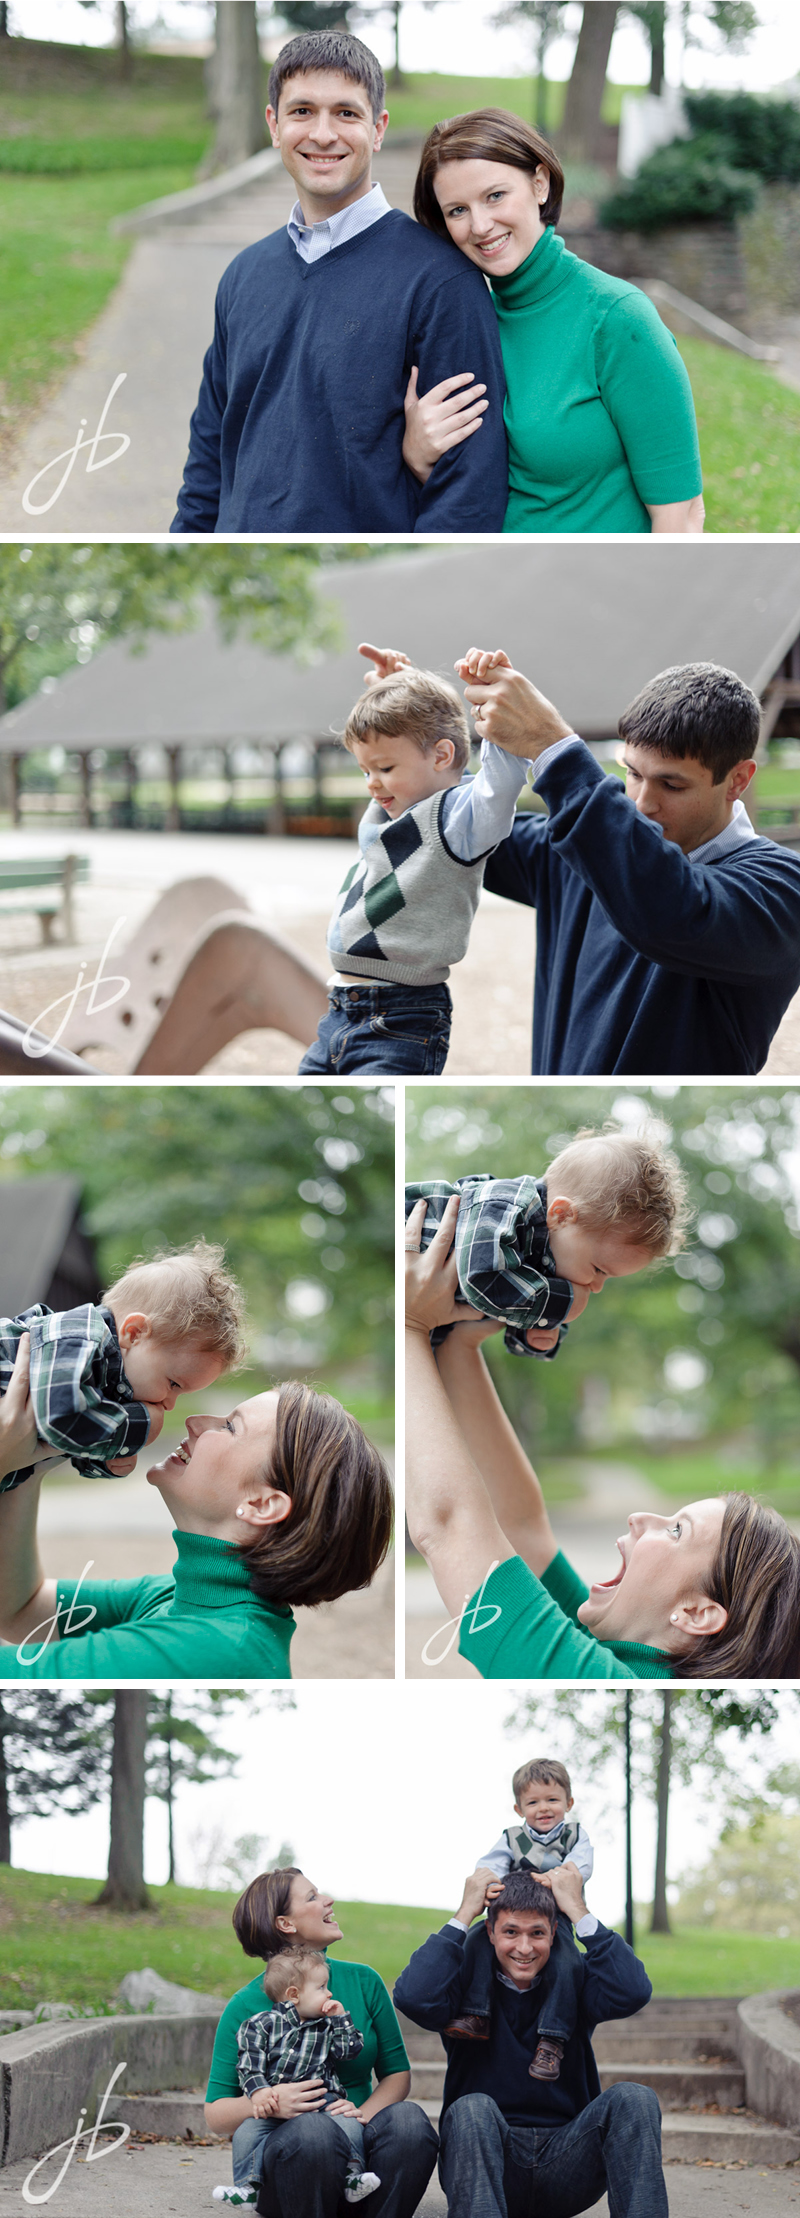 Family Lifestyle photography by Jeremy Bischoff Photography